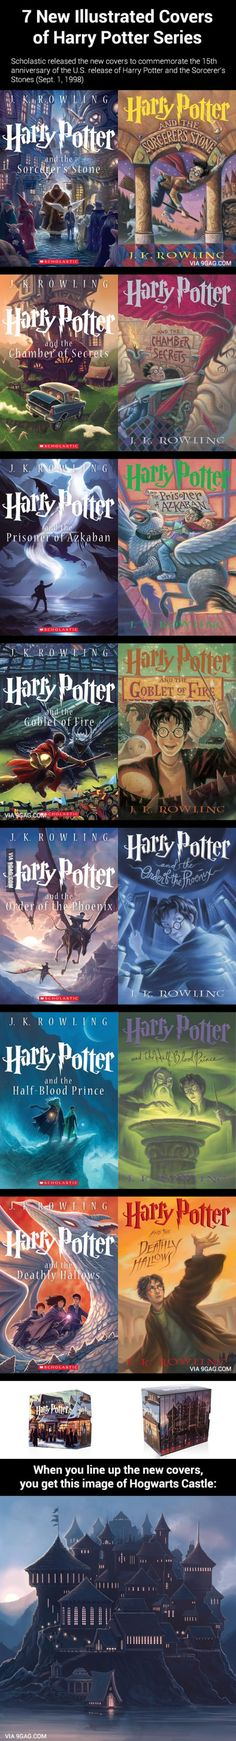 All 7 new covers! I cannot believe it's been 15 years since the first Harry Potter was released!